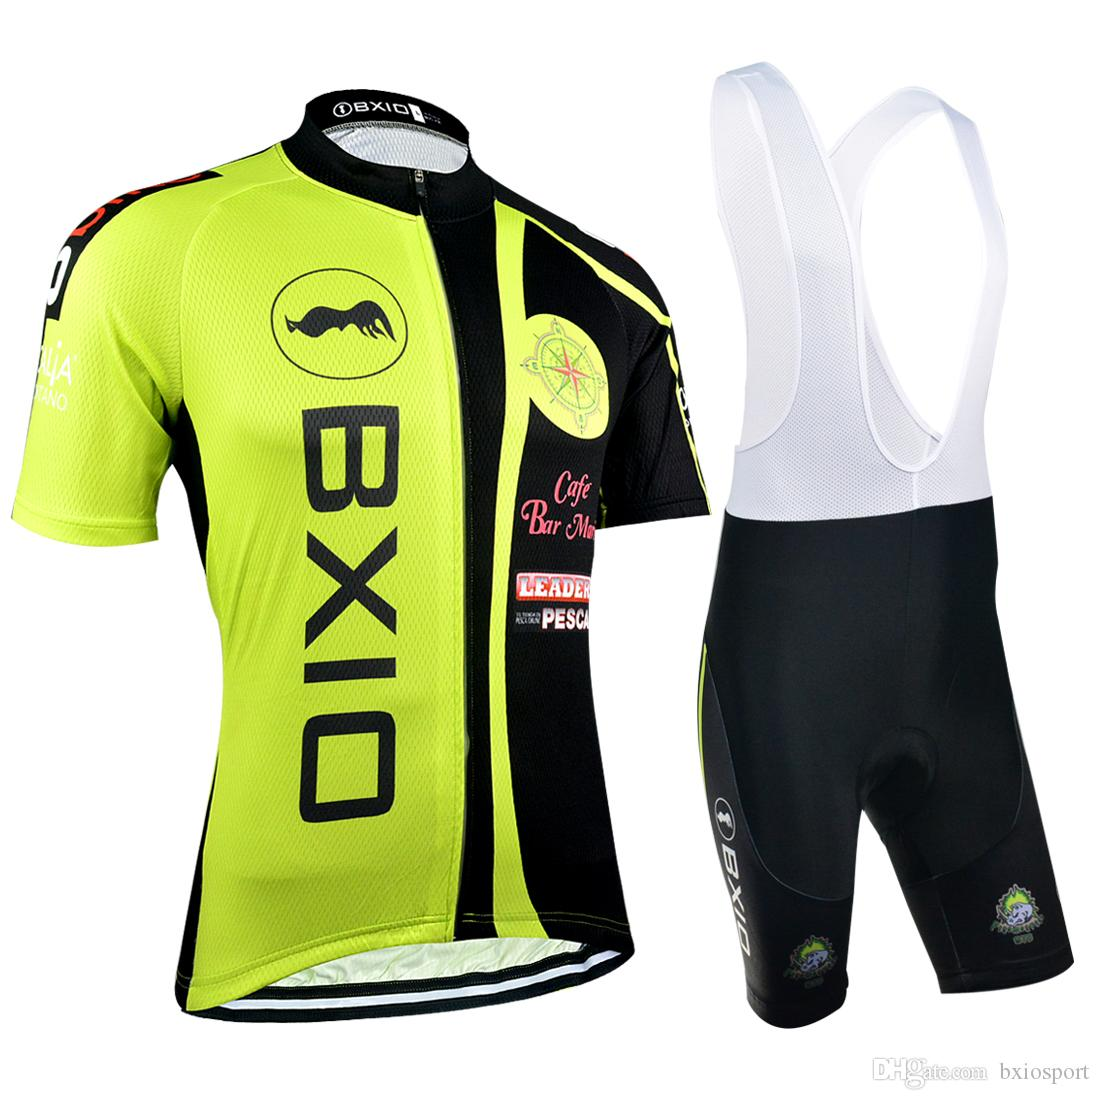 BXIO Original Design Cycling Jerseys Summer Short Sleeve Green Sport Bicycle  Clothes New Arrival Bikes Clothes BX 039 Cycle Shorts Castelli Bib Shorts  From ... 877c702b3